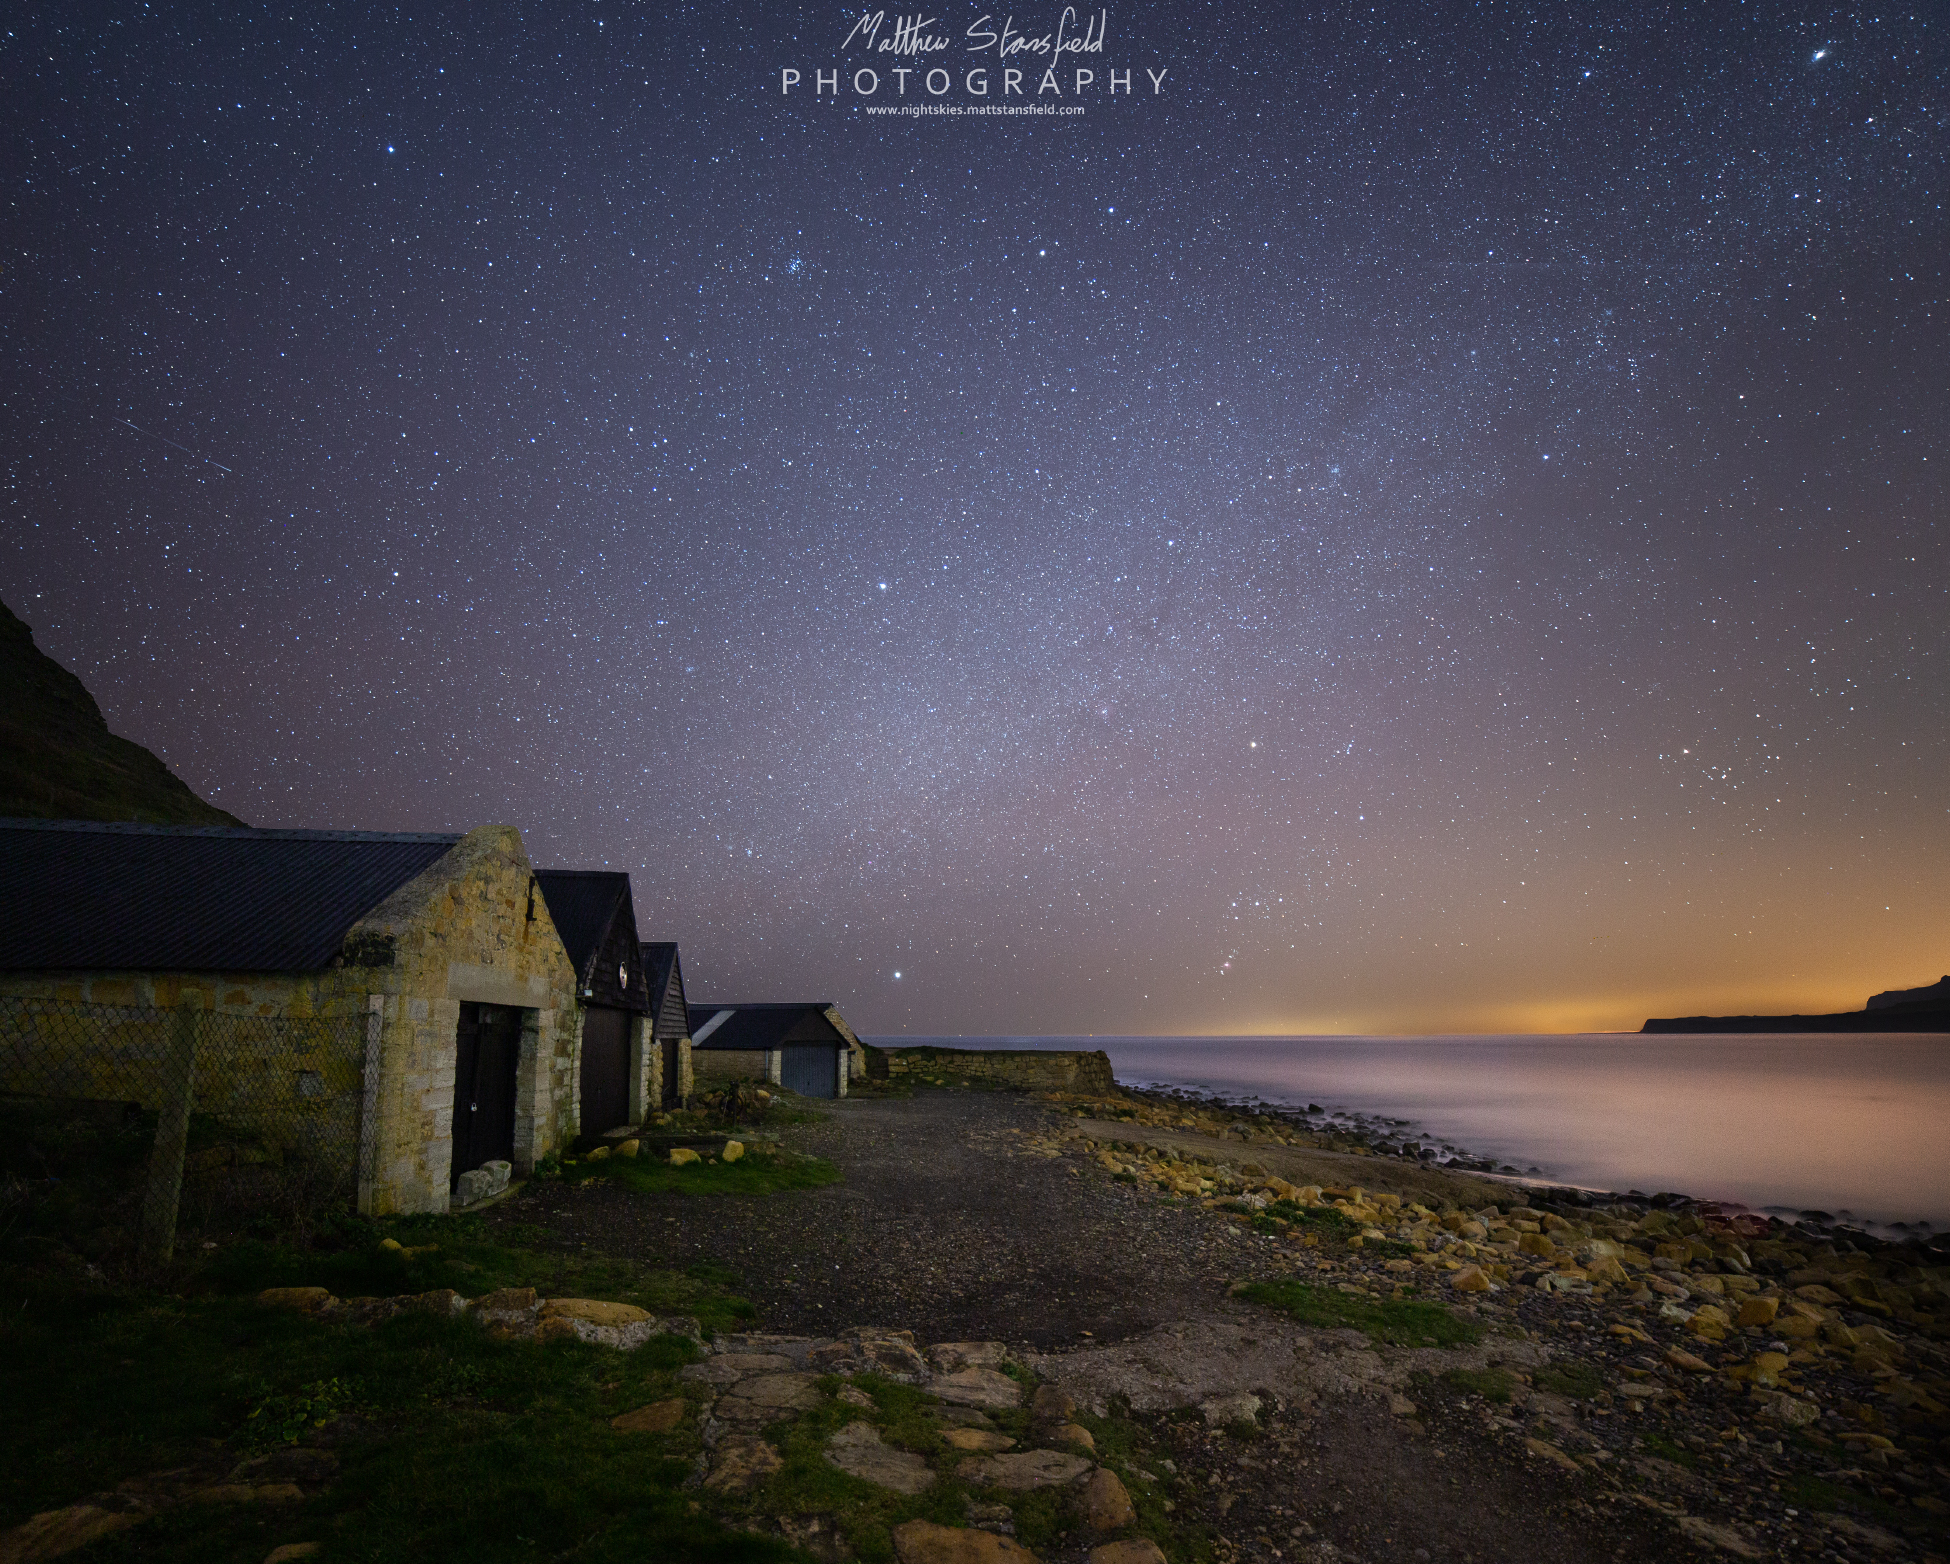 Kimmeridge Bay - ISO 800, F2.8, 240 seconds for the sky. ISO 1600, F2.8, 320 second exposure.